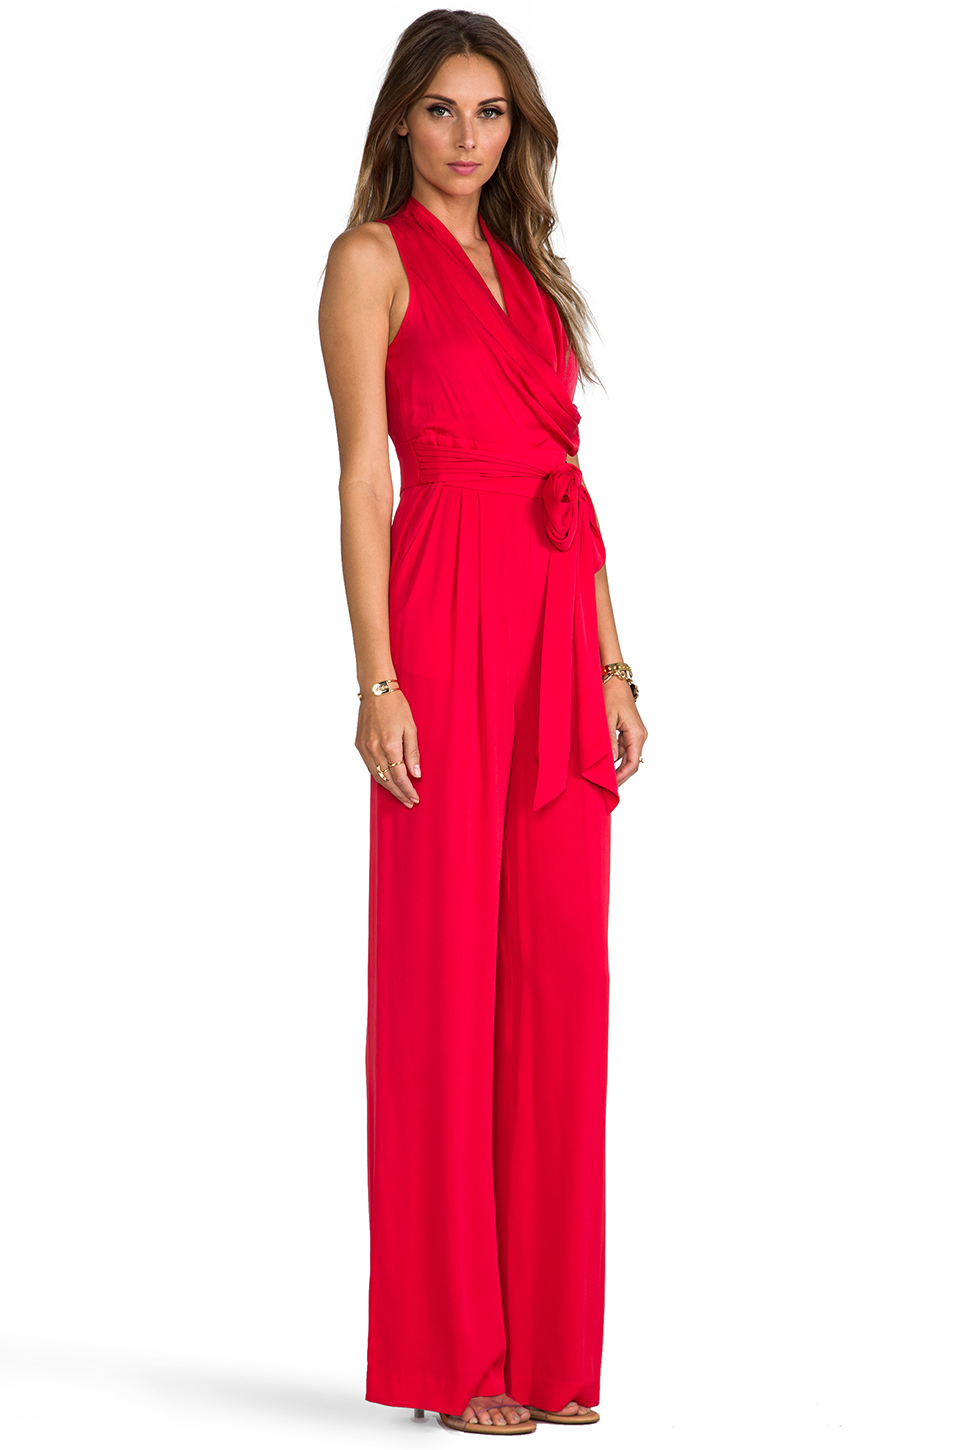 Catherine Malandrino Marion Favorites Jumpsuit in Vermillion | REVOLVE